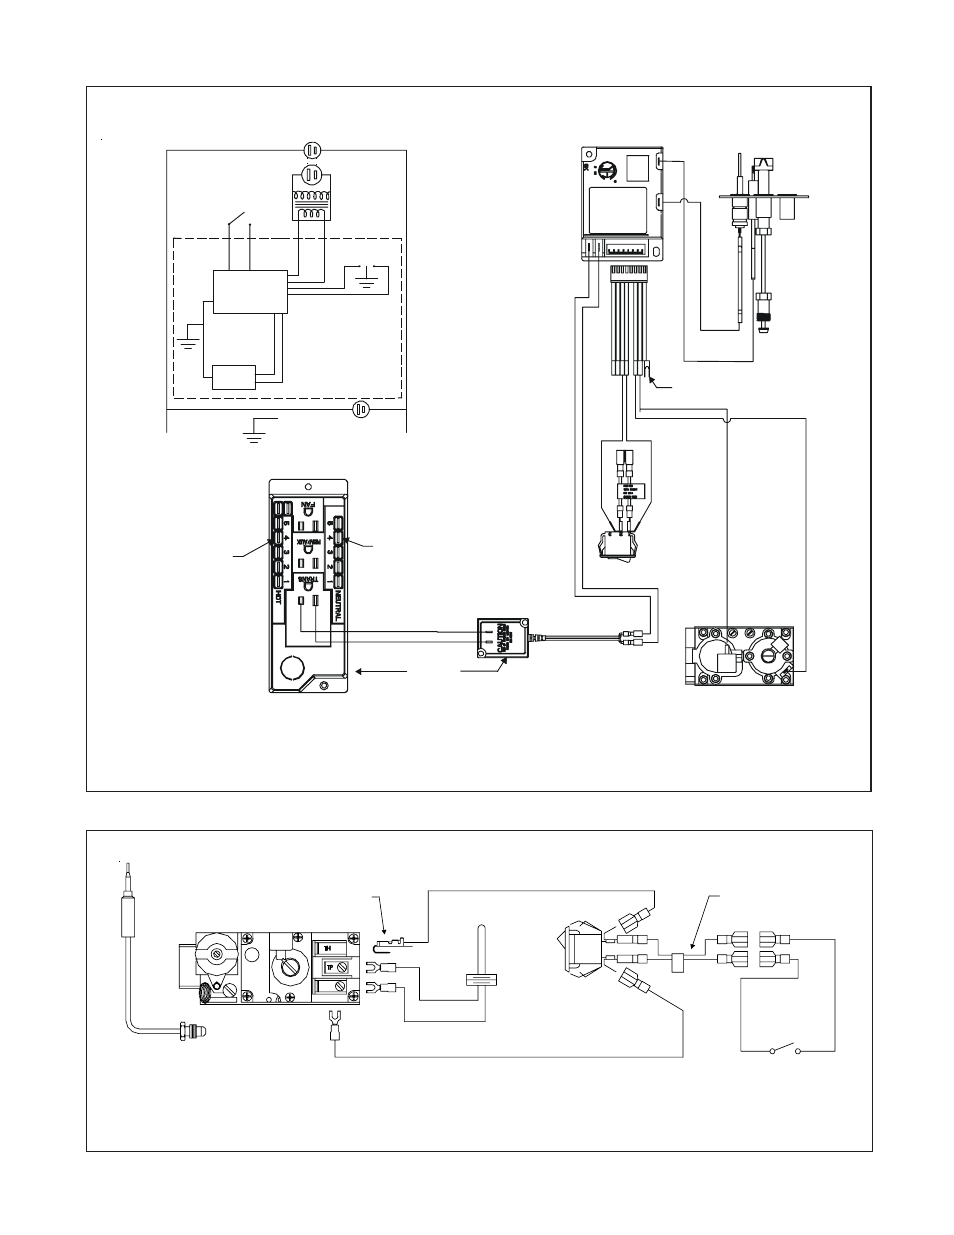 Ignition Switch Wiring Diagram Also Ignition Switch Wiring Diagram